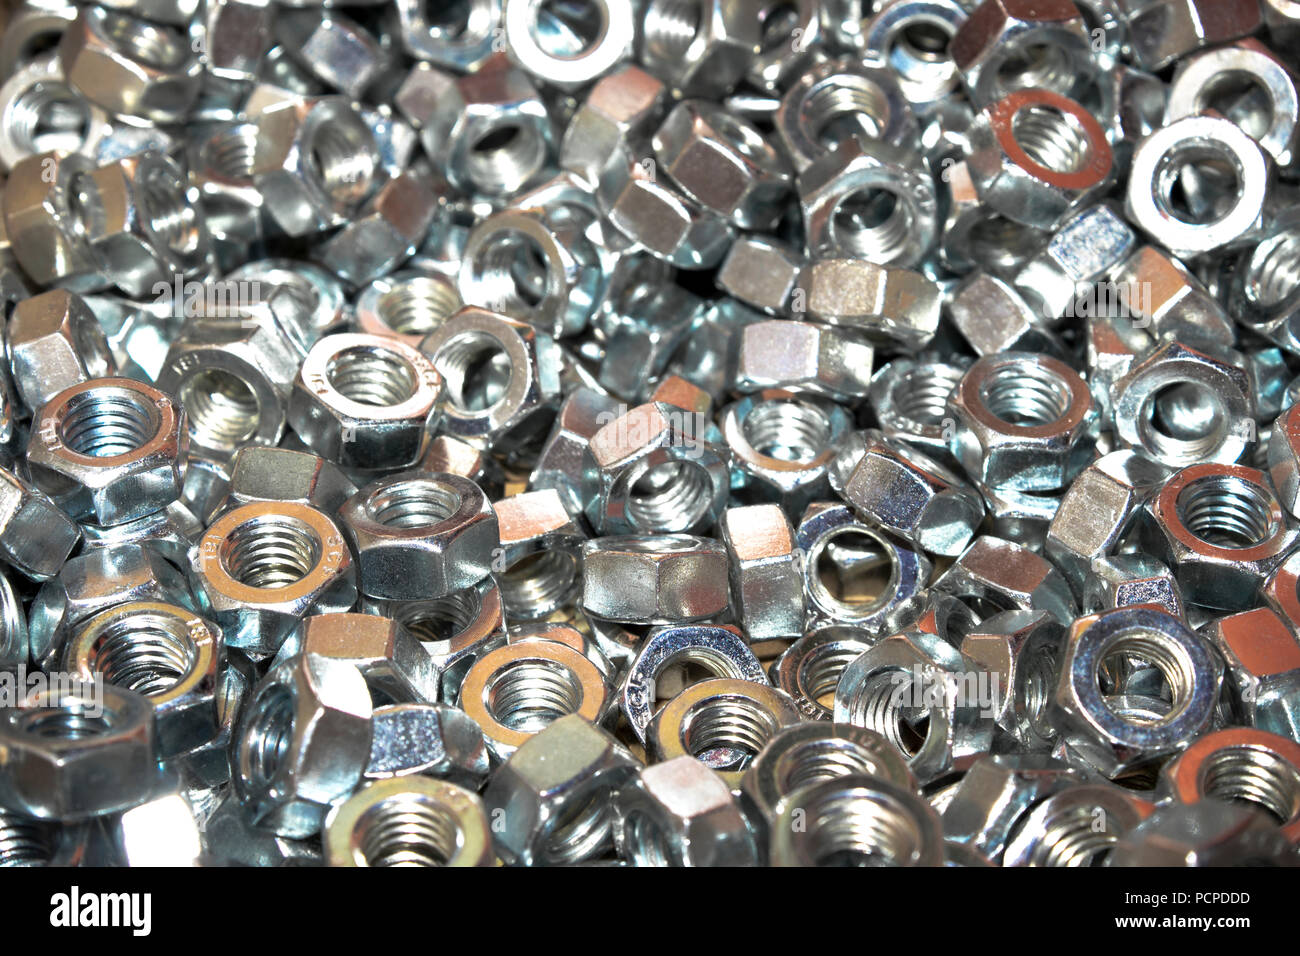 Lots of industrial galvanized steel nuts on a a big pile in warm light - Stock Image